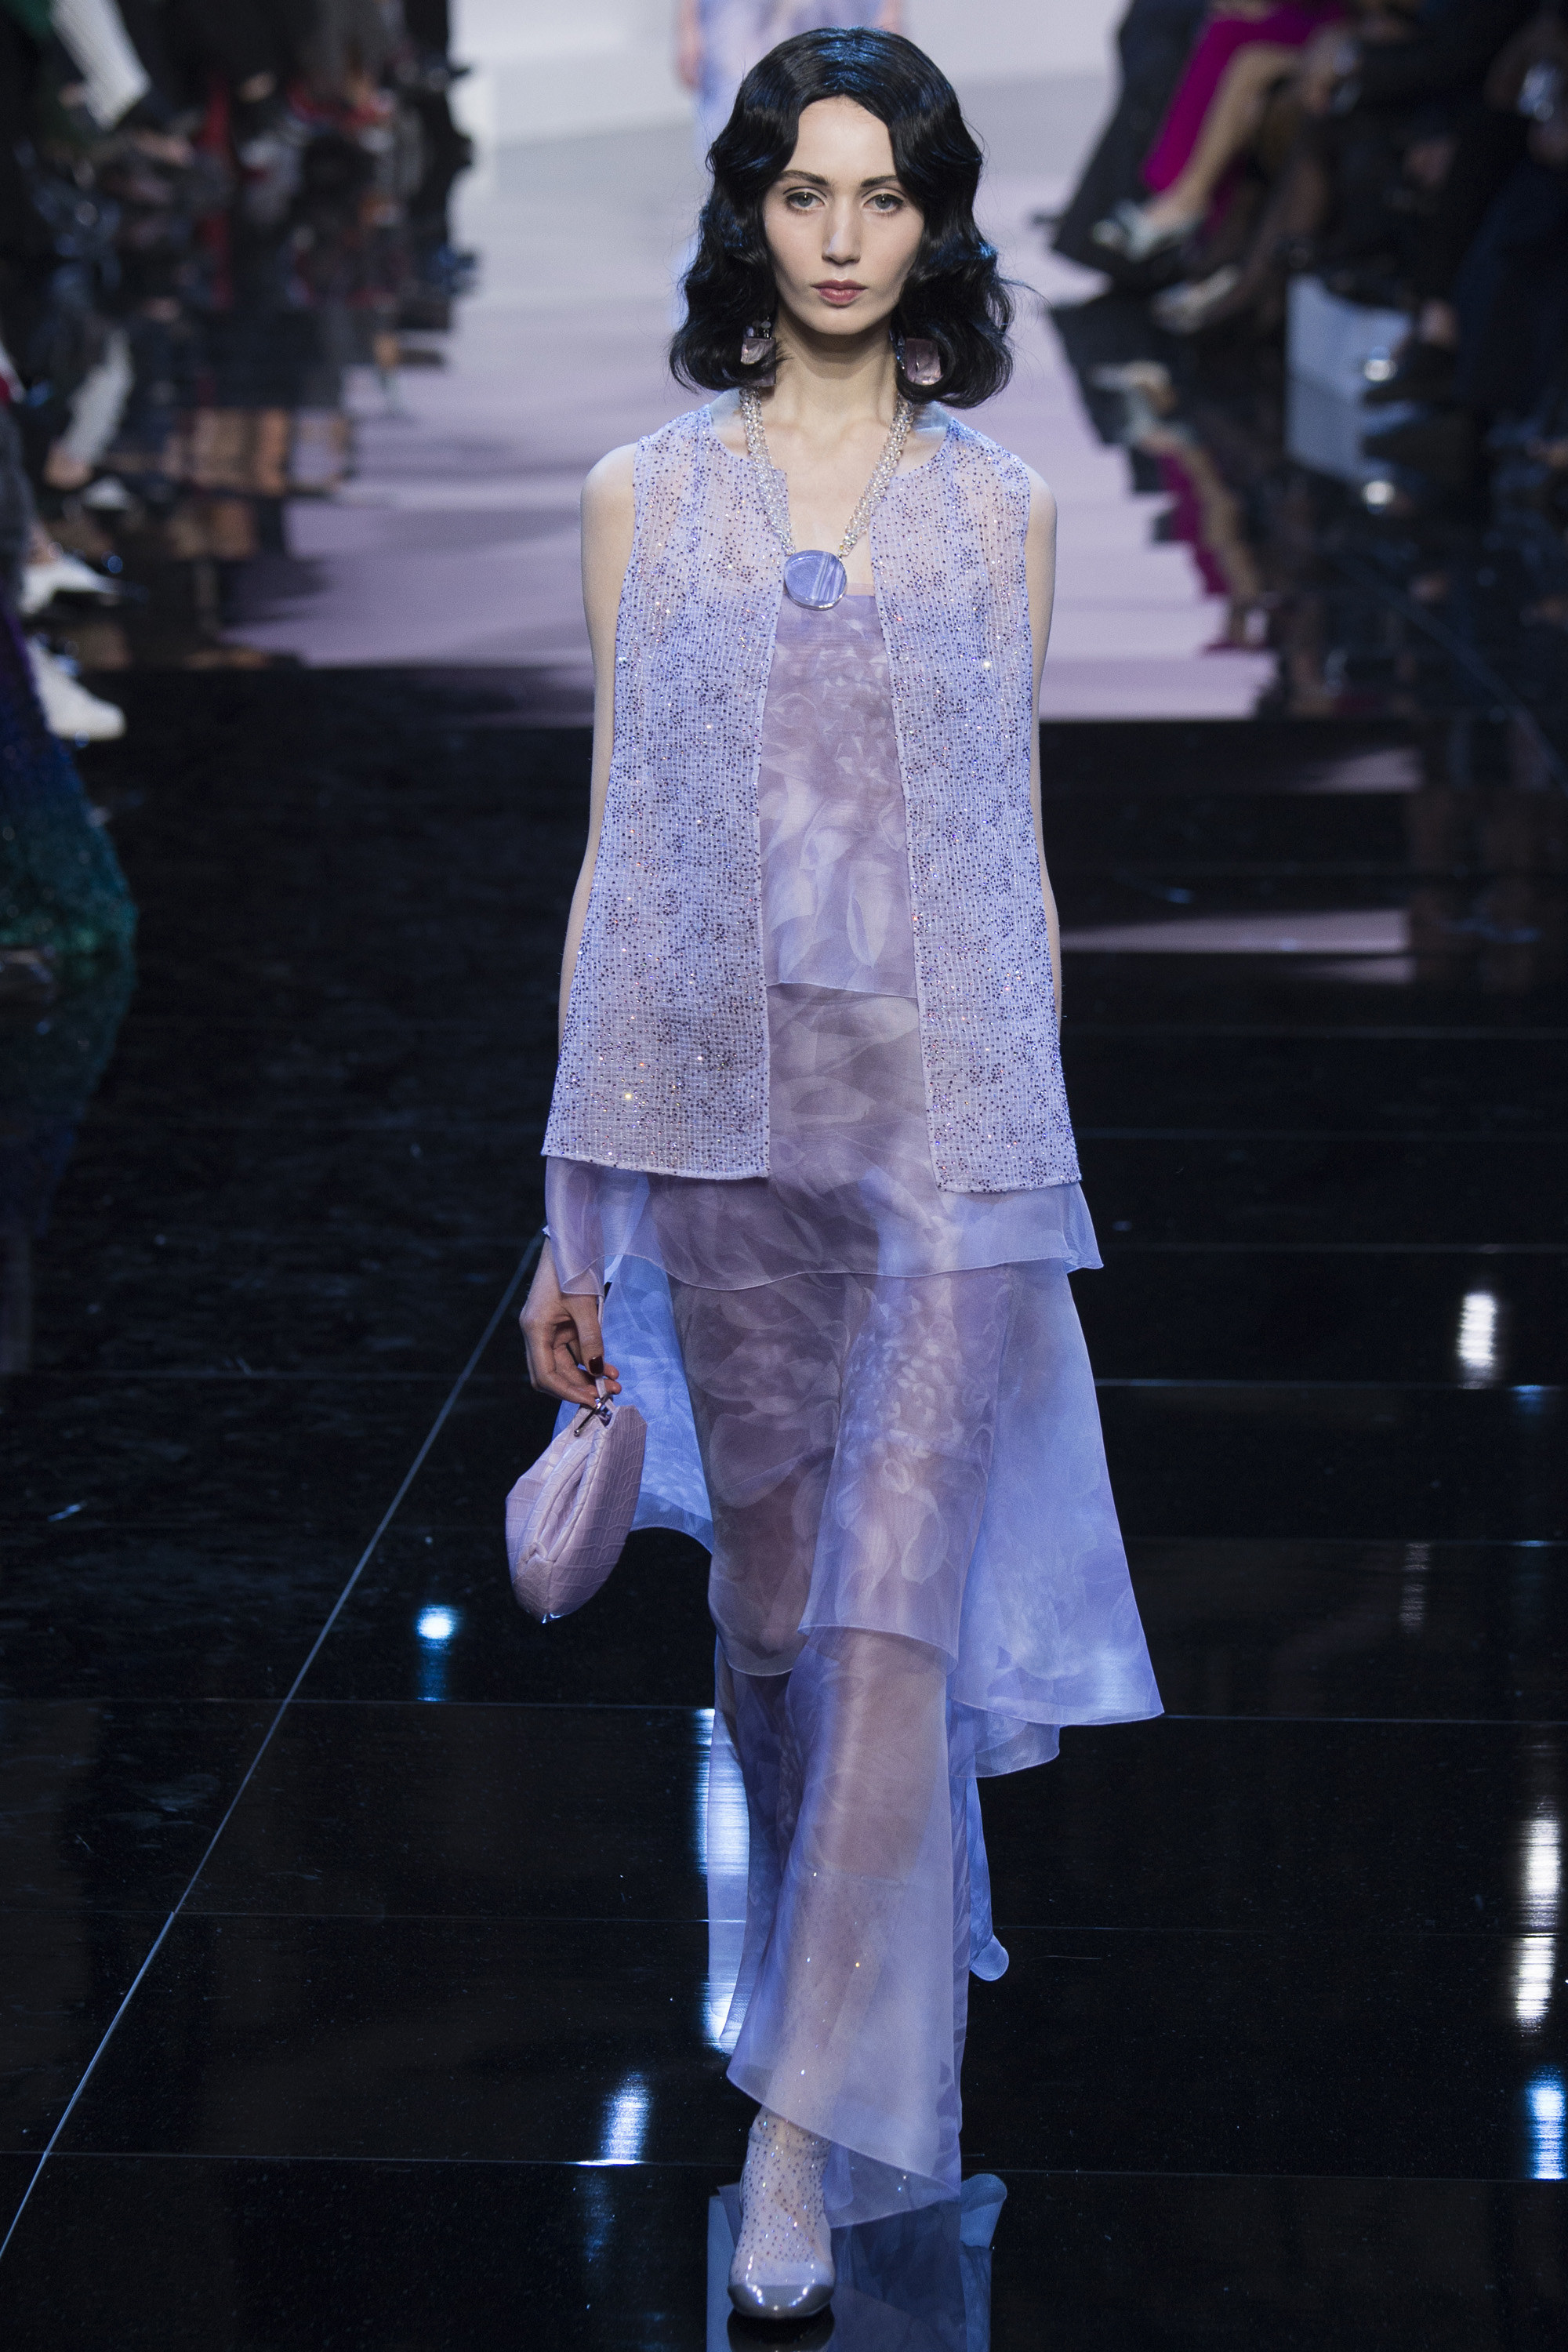 Armani-Prive-Couture-Spring-2016-16.jpg